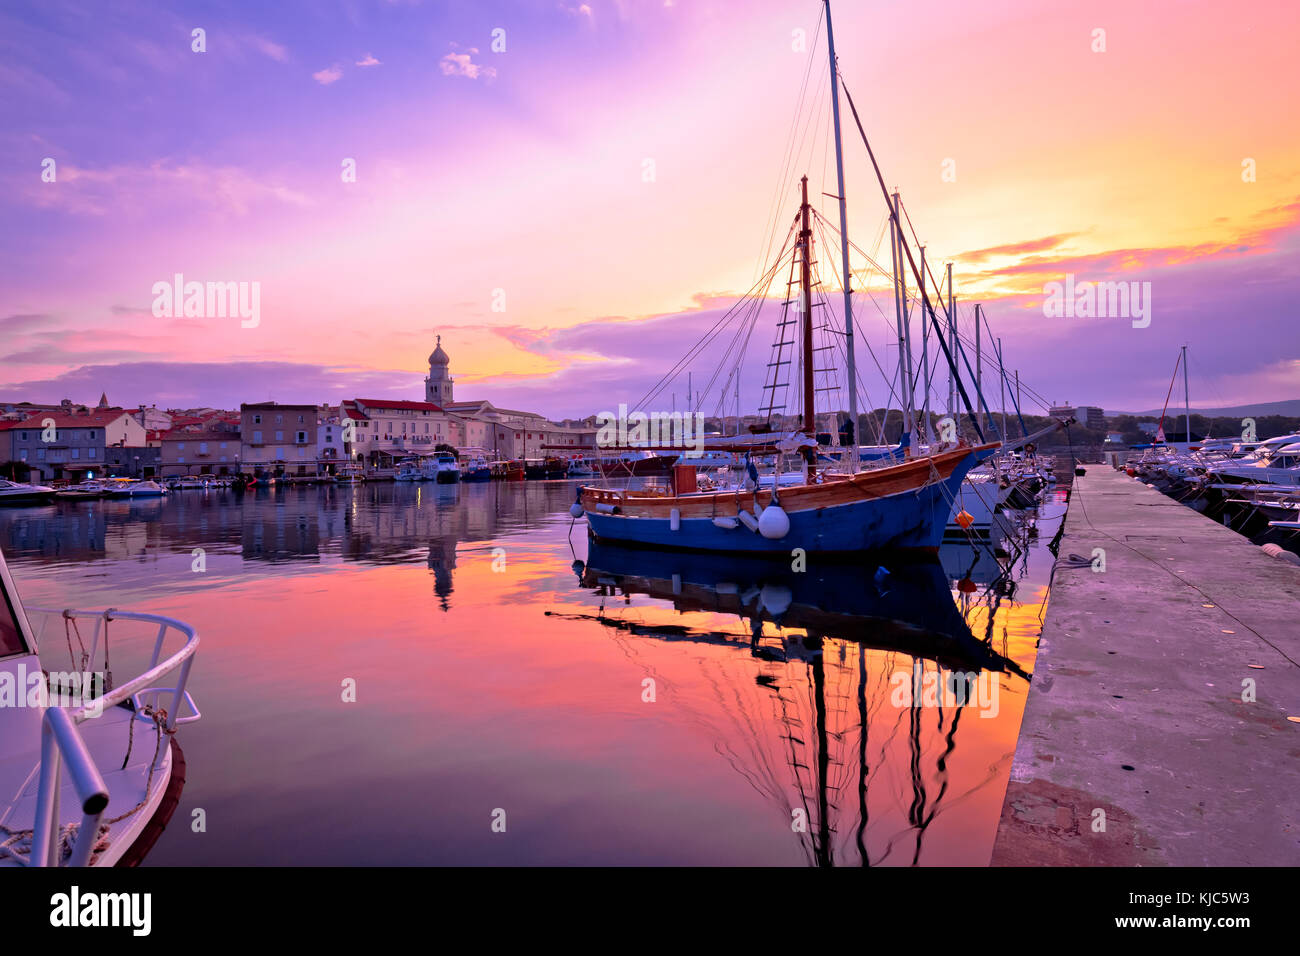 Historic island town of Krk dawn waterfront view, Kvarner bay archipelago of Croatia Stock Photo